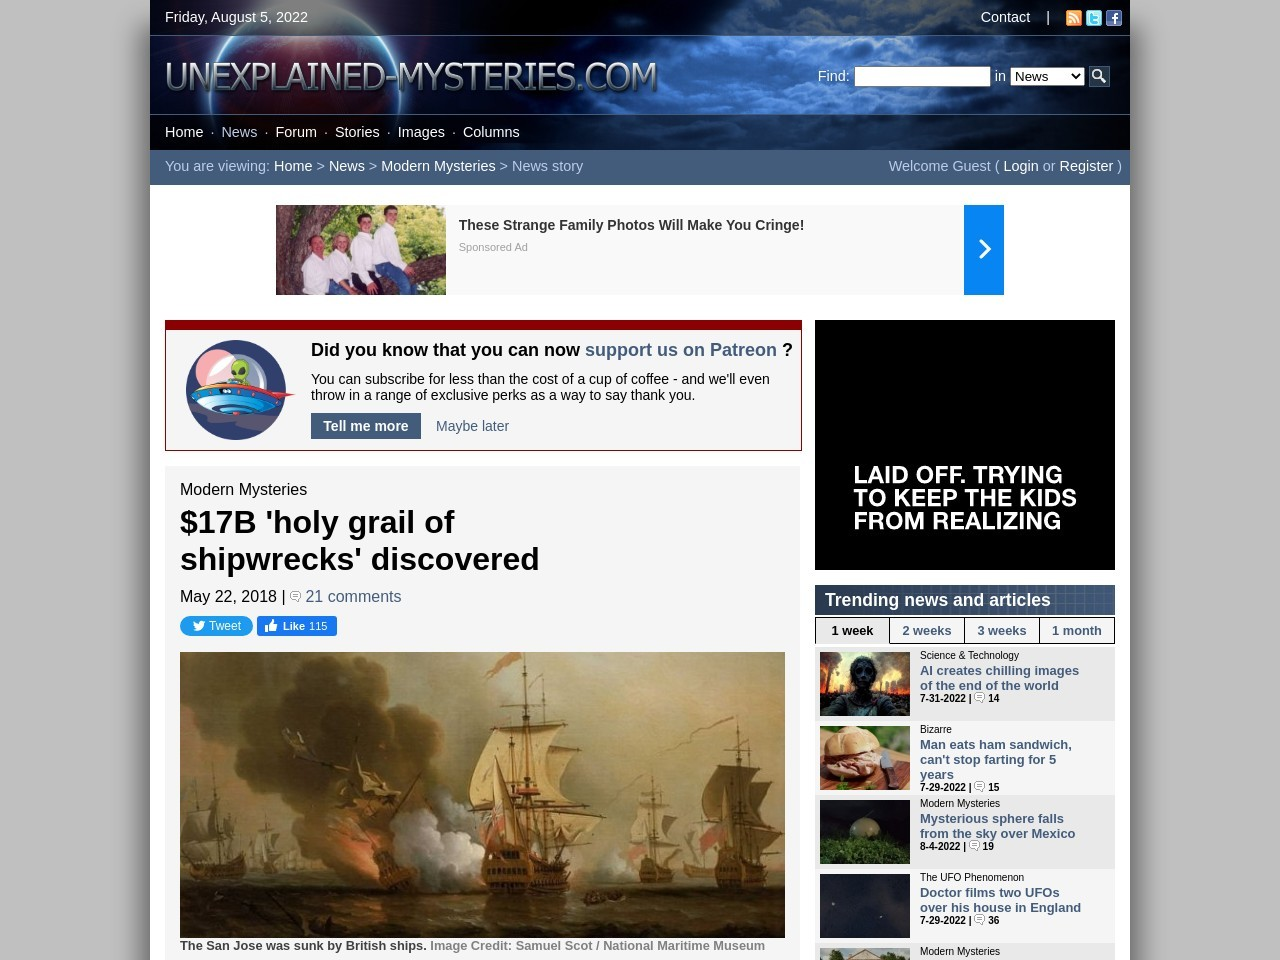 $17B 'holy grail of shipwrecks' discovered